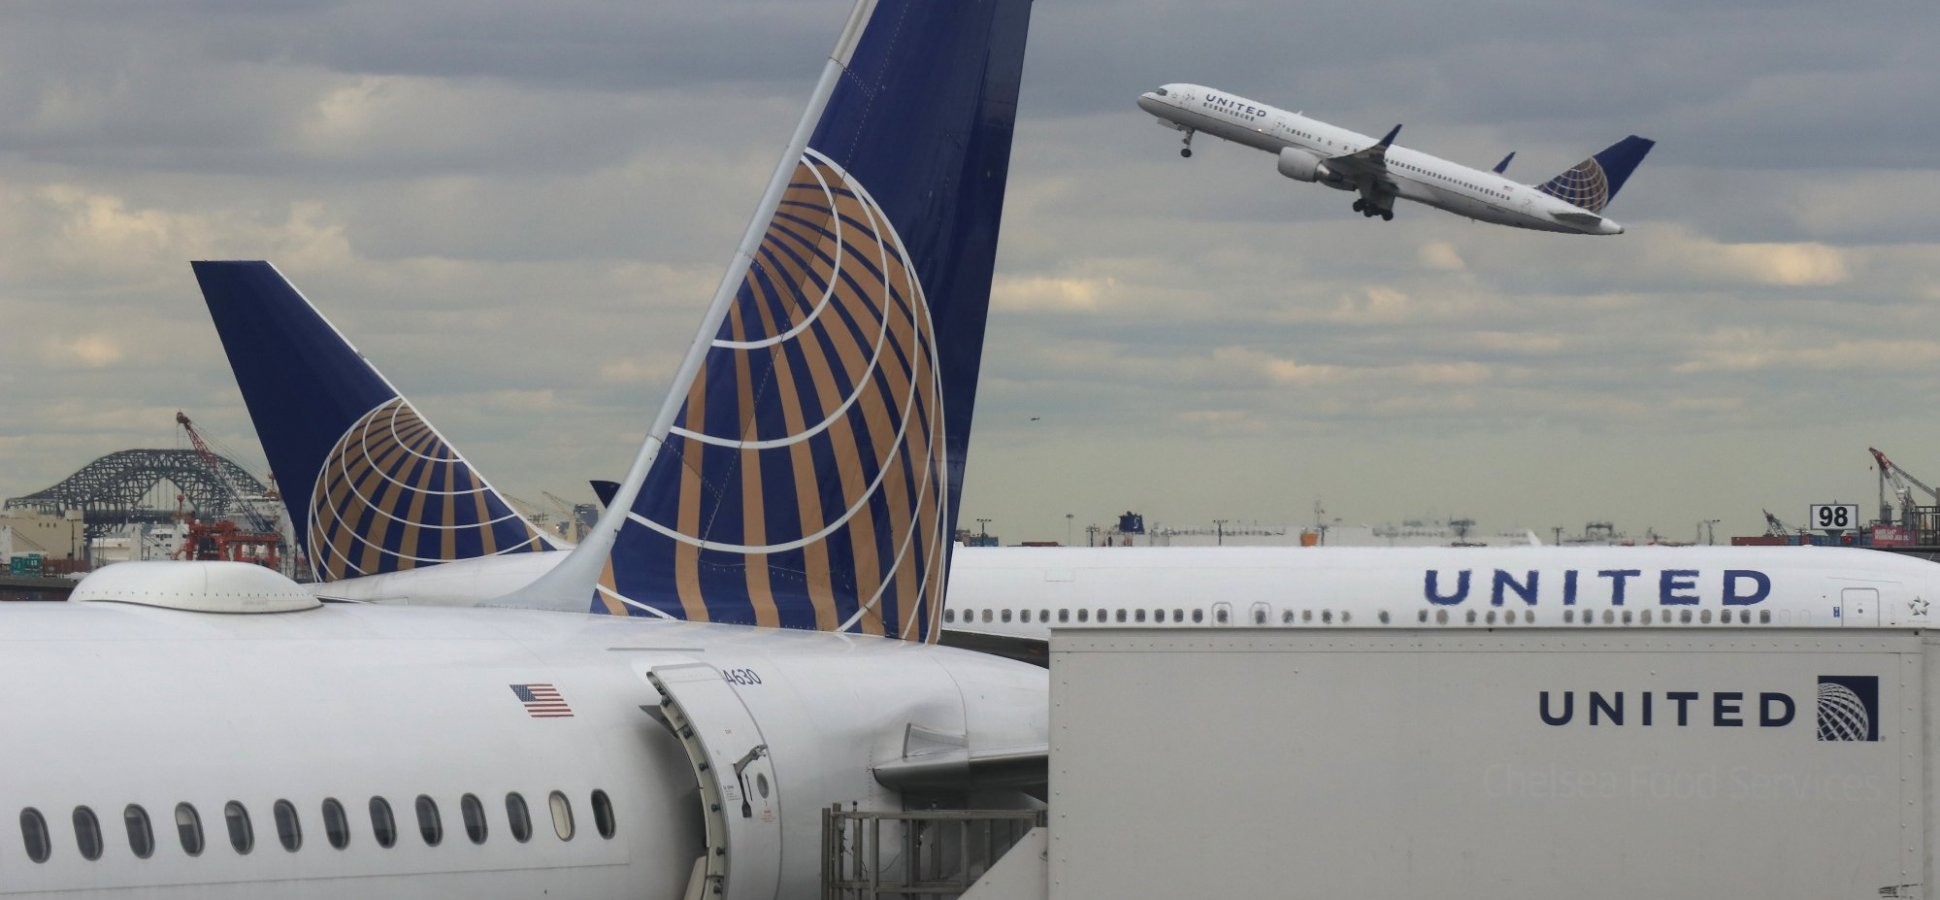 United Airlines Gave Passengers a Terrible Explanation for the Lack of a Basic Service. What's Stunning Is How Passengers Reacted